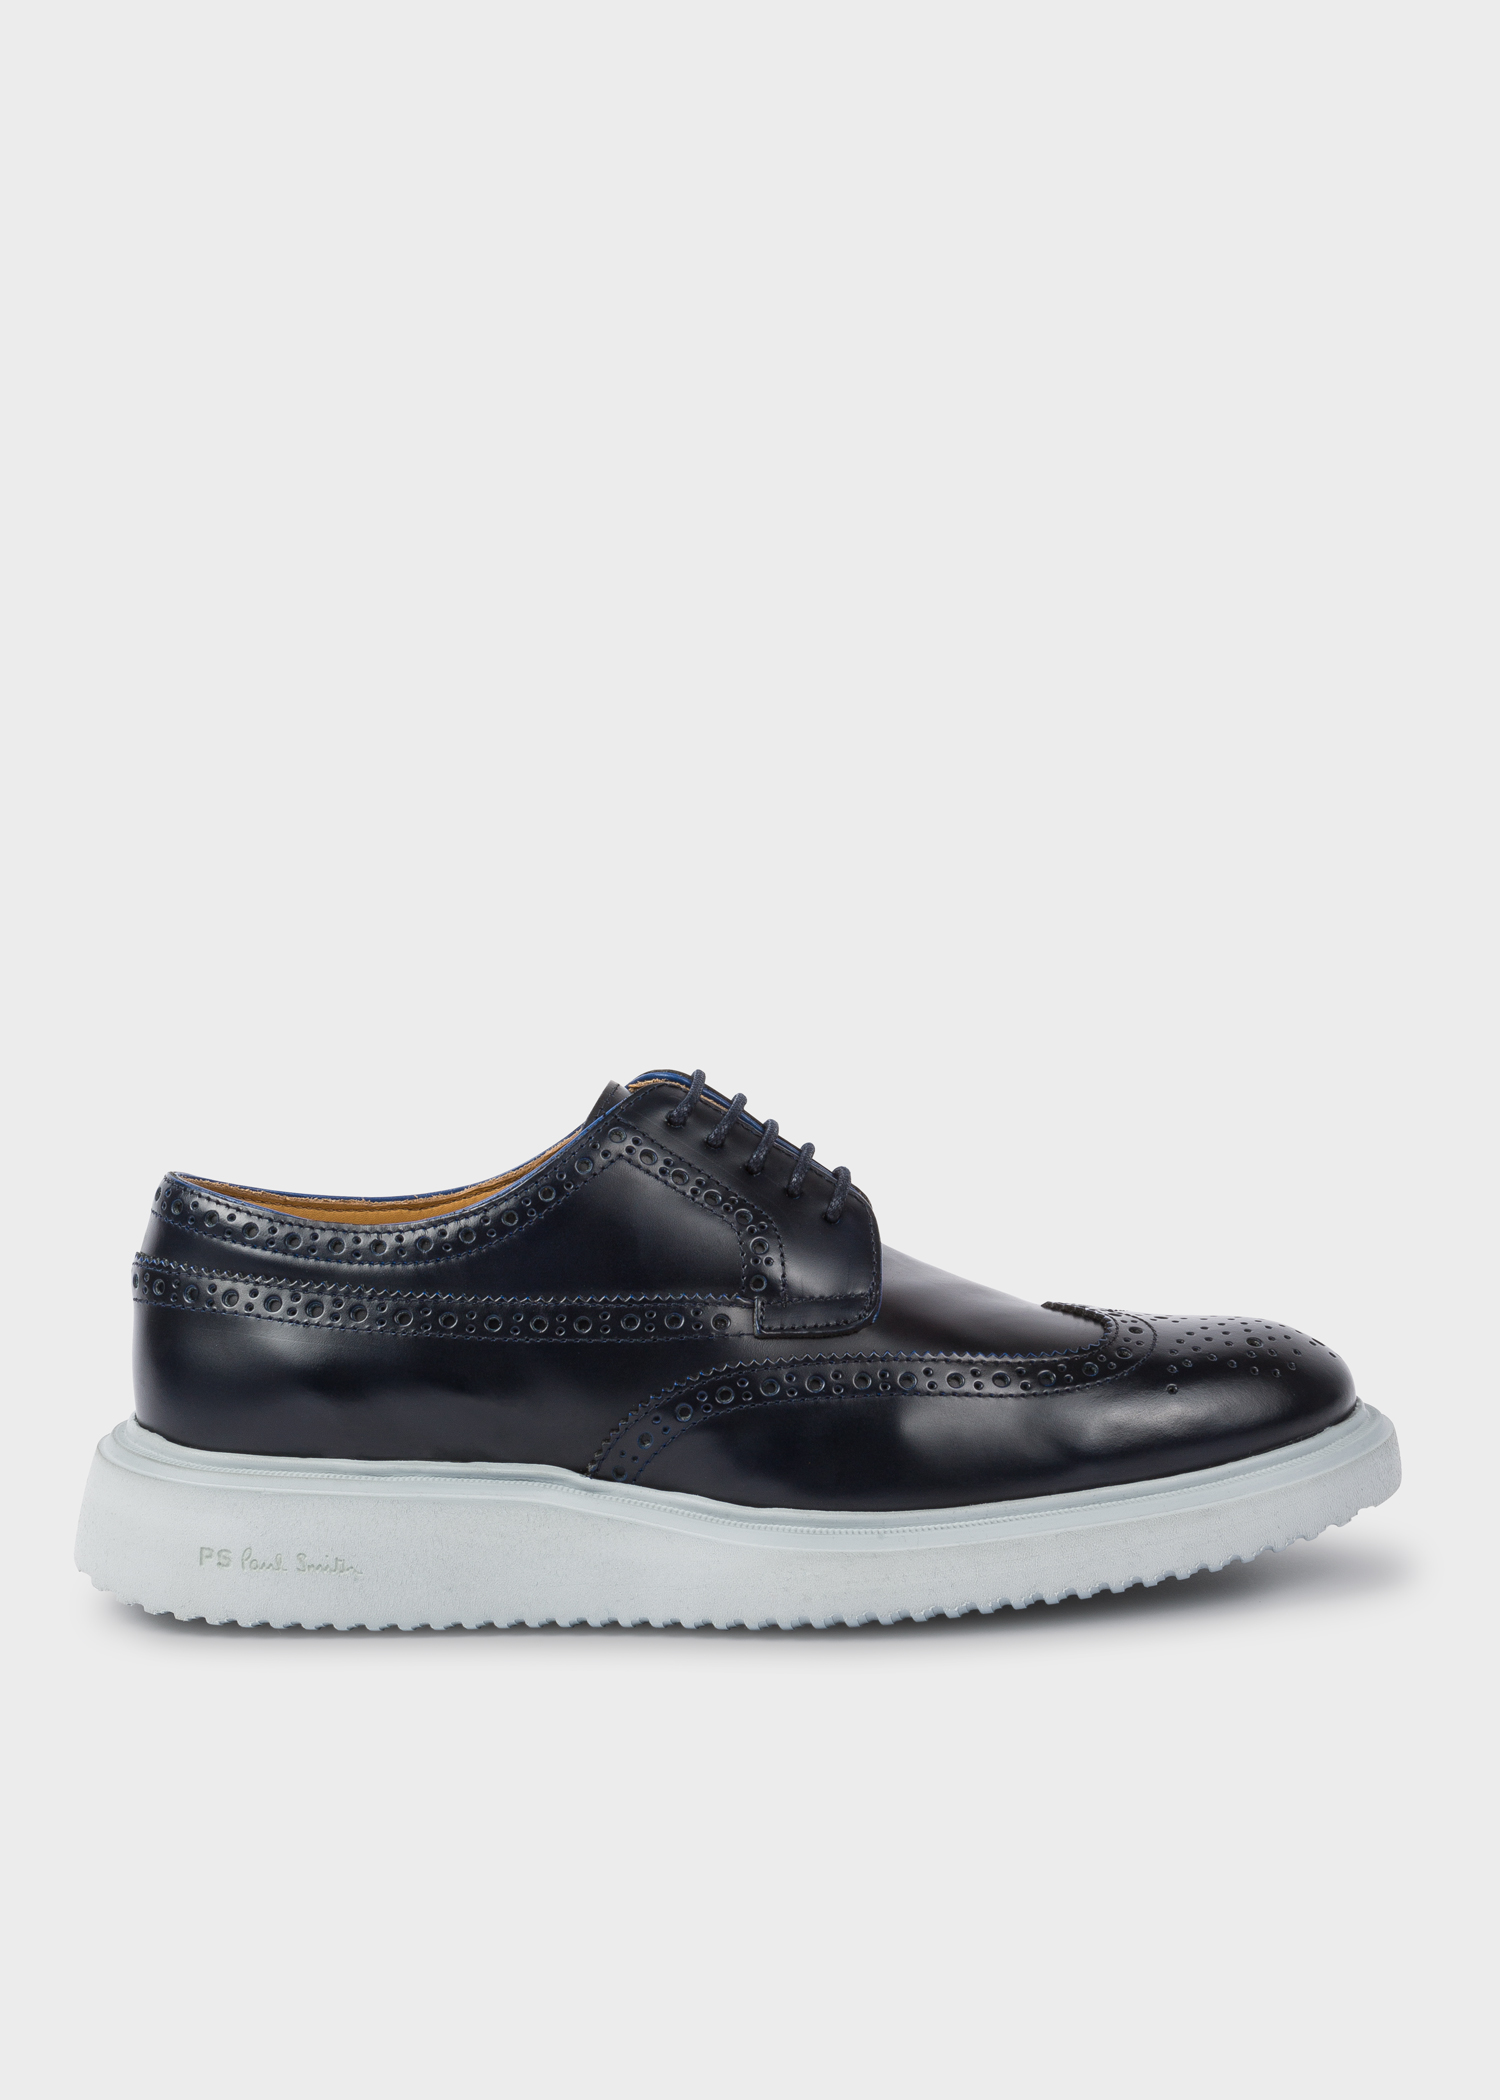 13233d2ab73 Side view - Men's Dark Navy 'Dixon' Leather Brogues Paul Smith